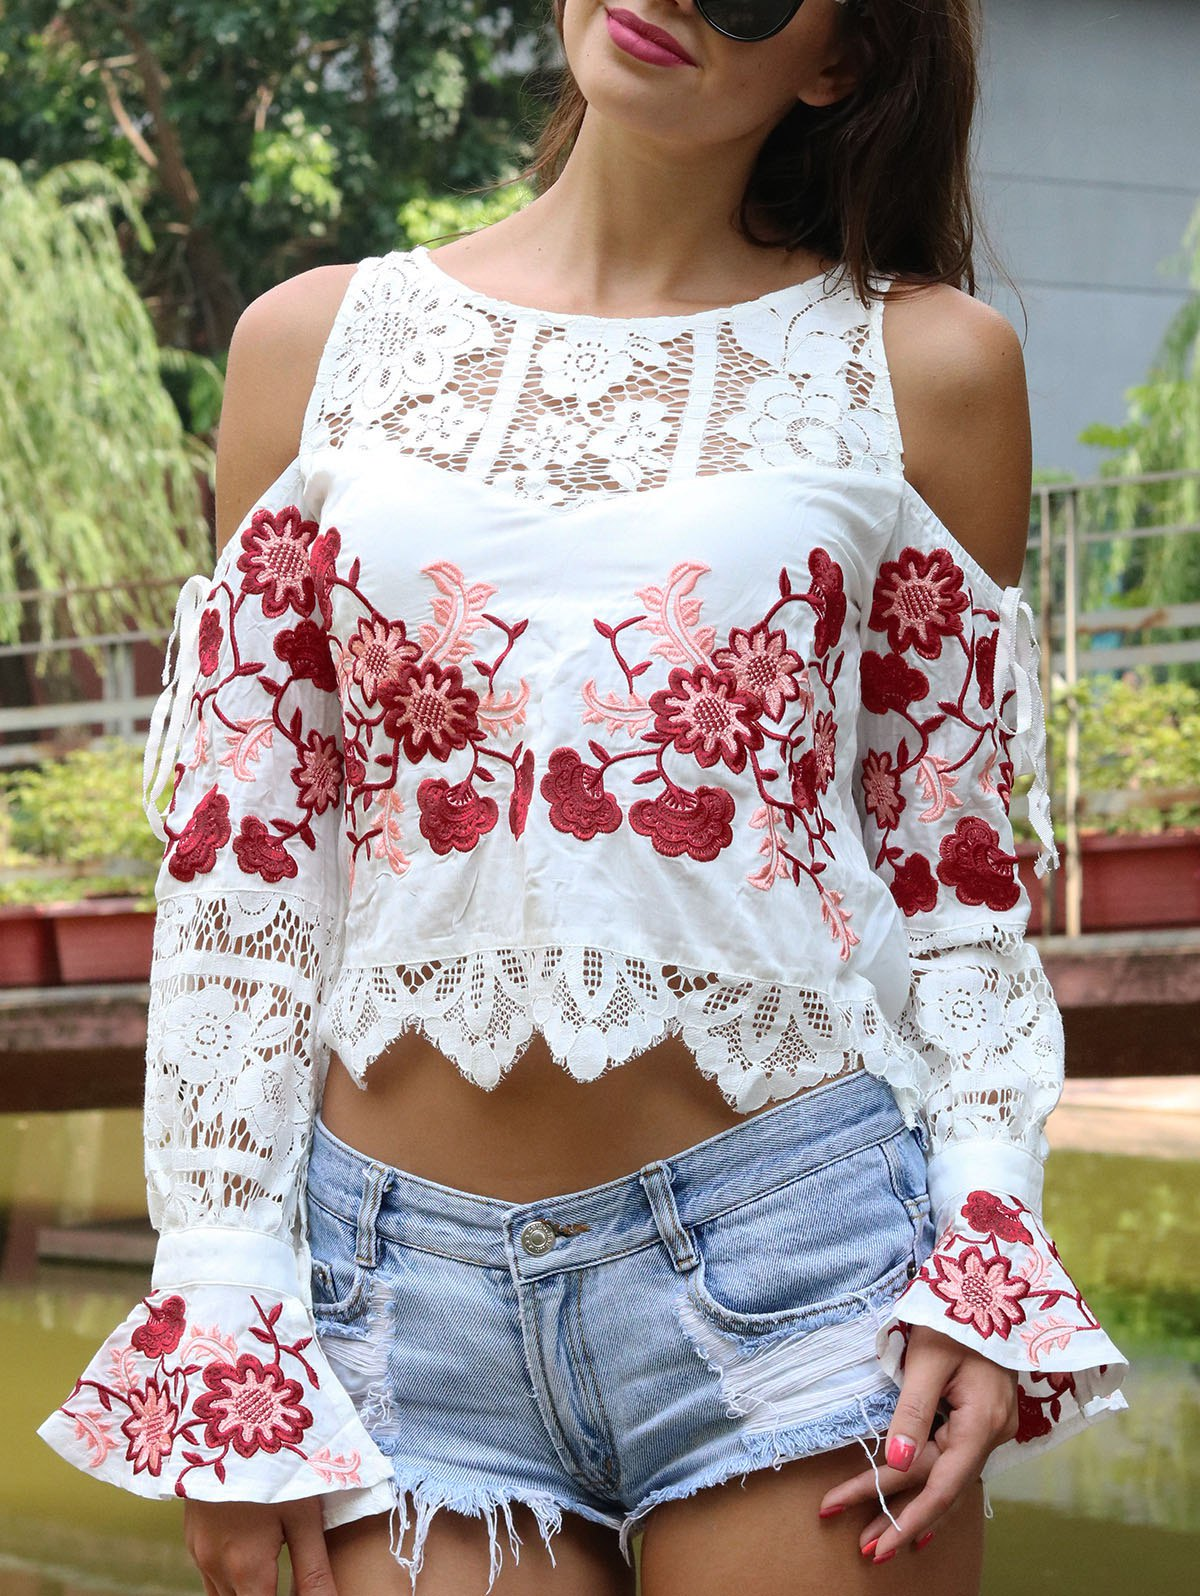 Sweet Women's Floral Embroidered Cold Shoulder Crop Top - WHITE L